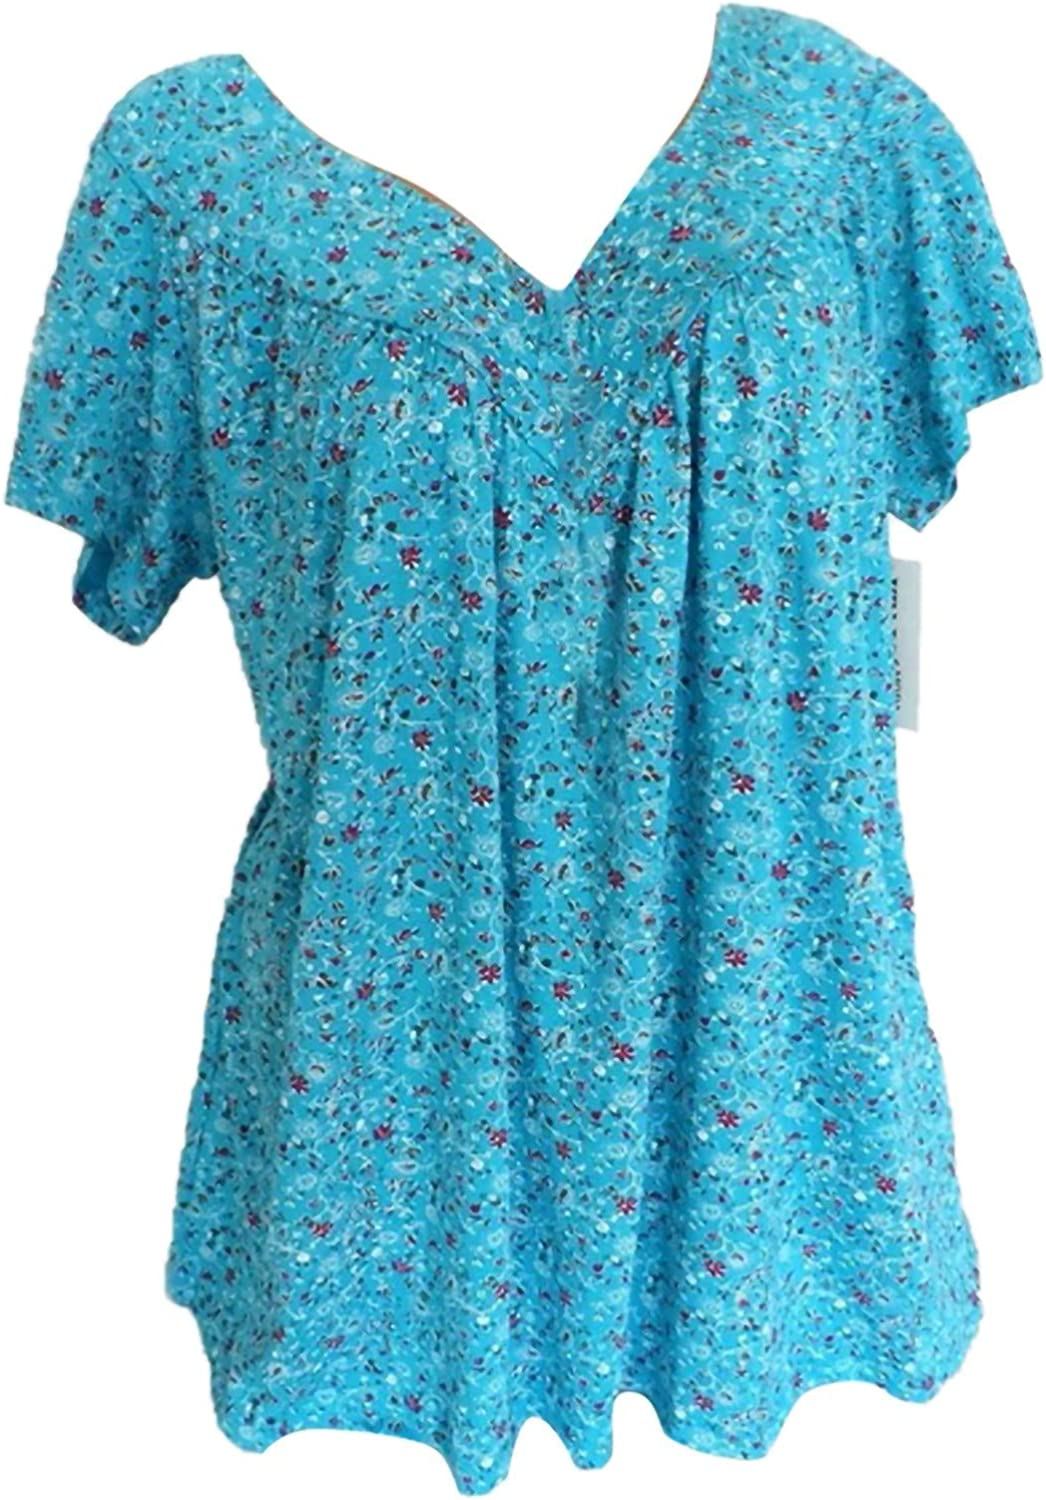 Jaqqra Summer Tops for Women, Womens V Neck Floral Print T-Shirts Short Sleeve Casual Loose Blouse Tunic Tee Top